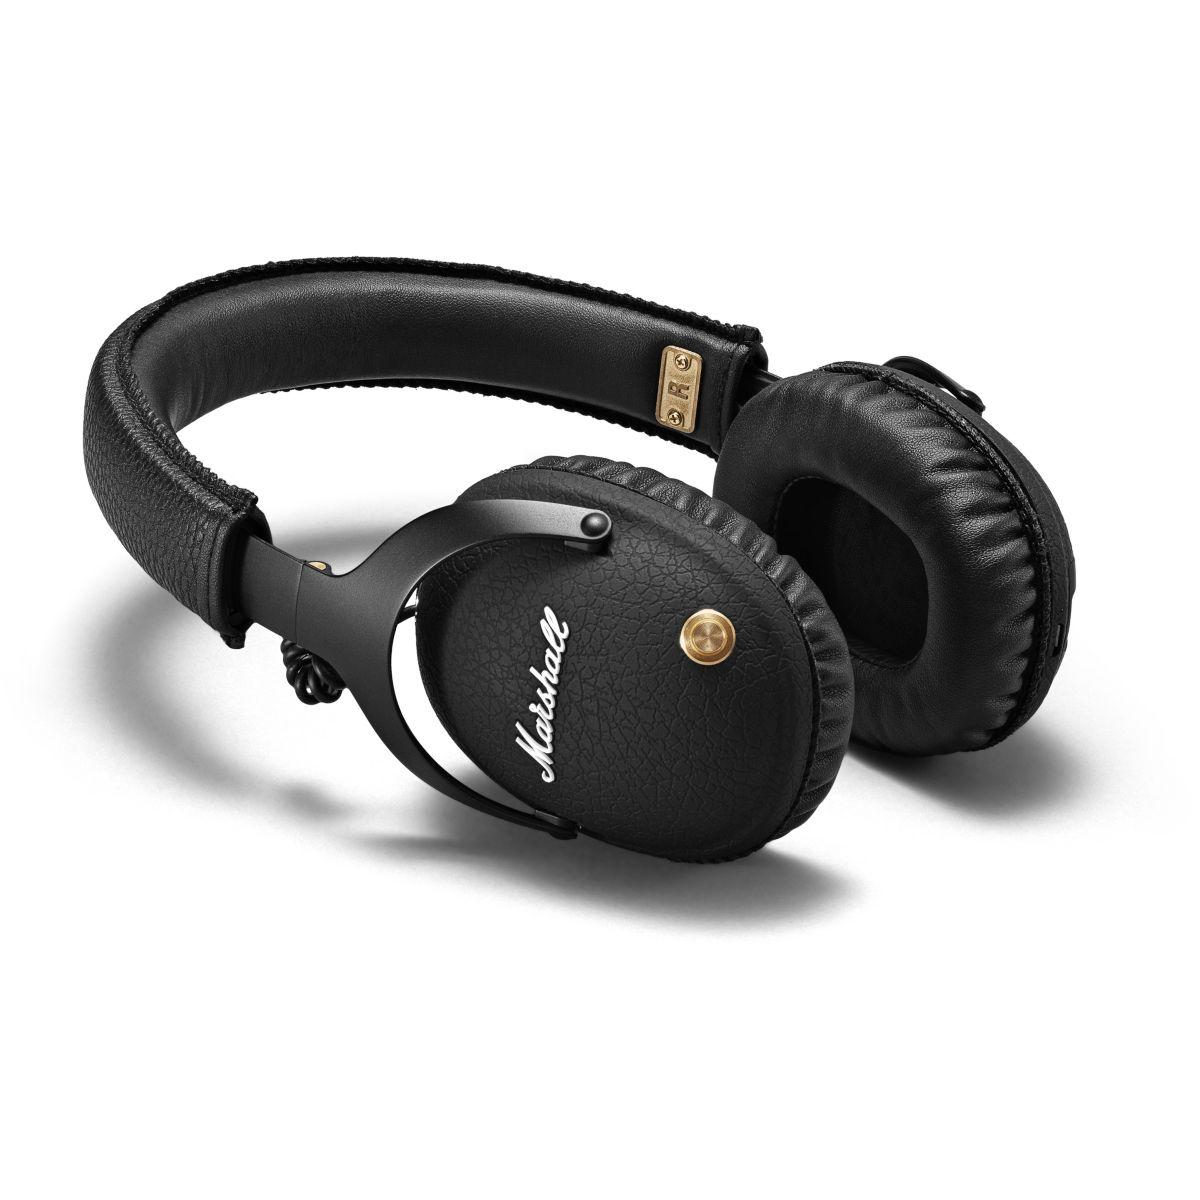 Casque + micro marshall monitor bt black - livraison offerte : code liv (photo)